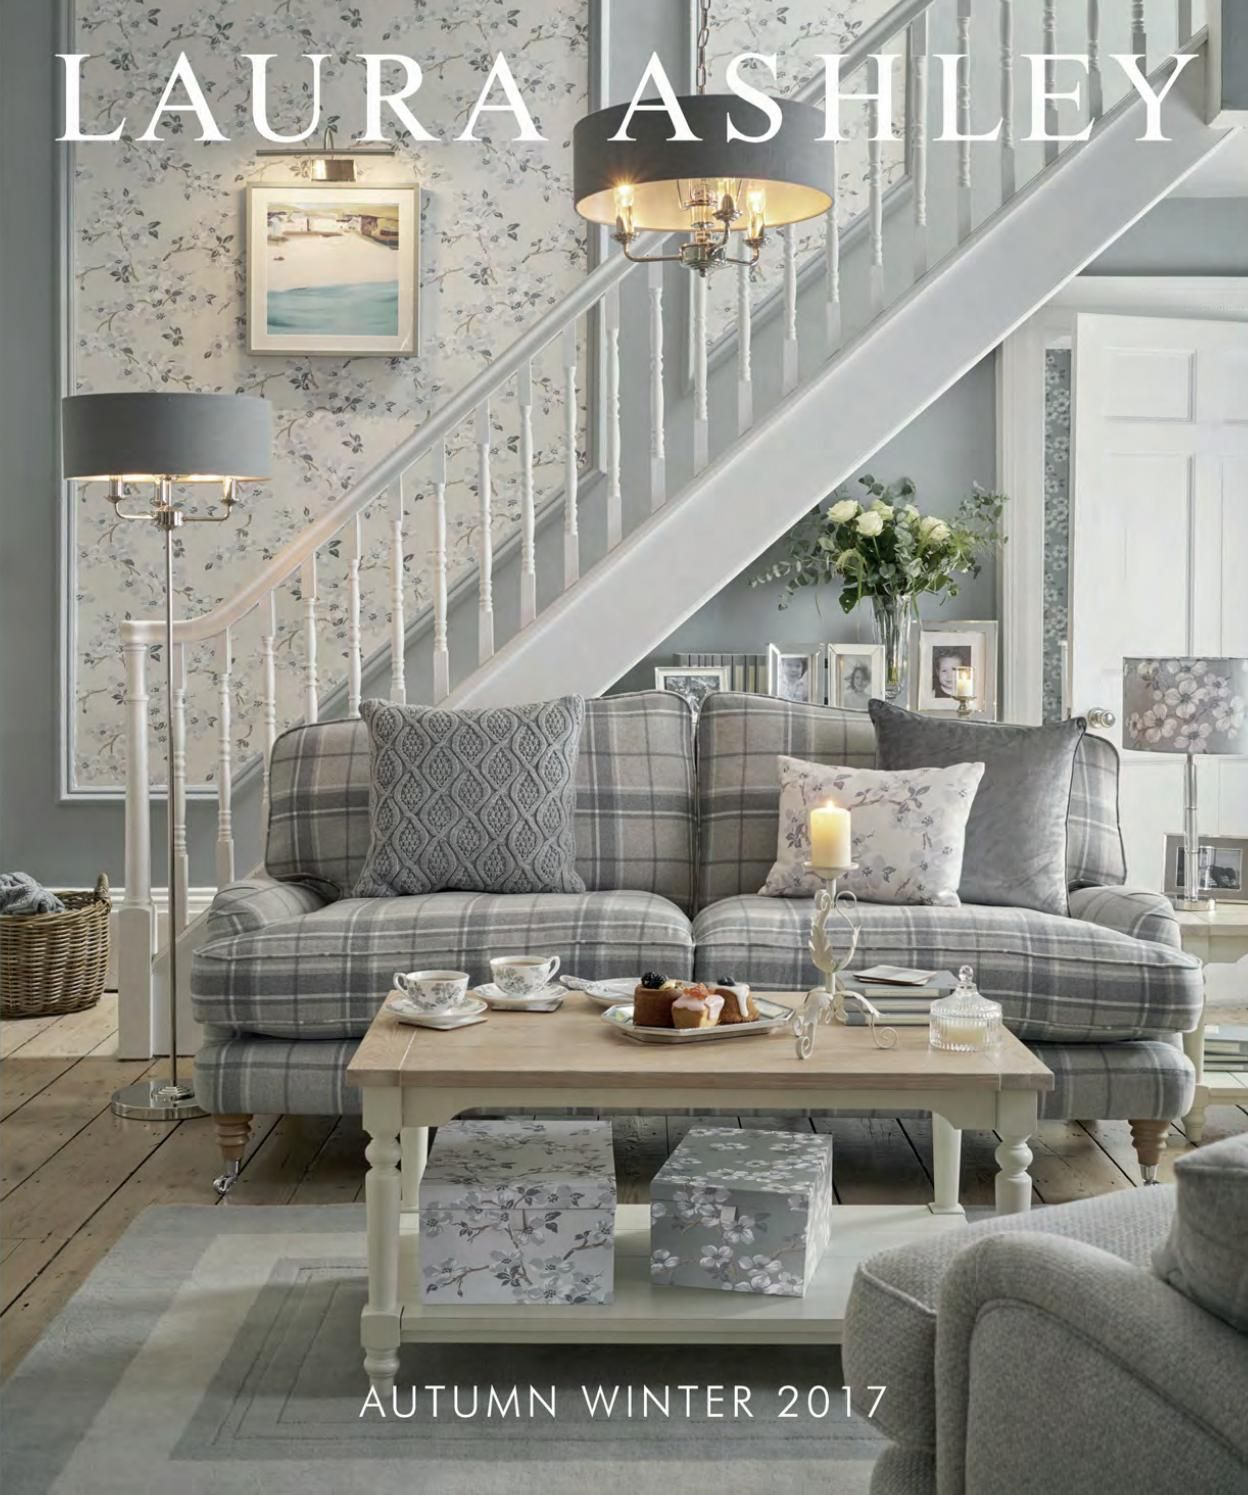 Wohnzimmer Englischer Landhausstil Laura Ashley Home Aw 2017 New Catalogue Laura Ashley